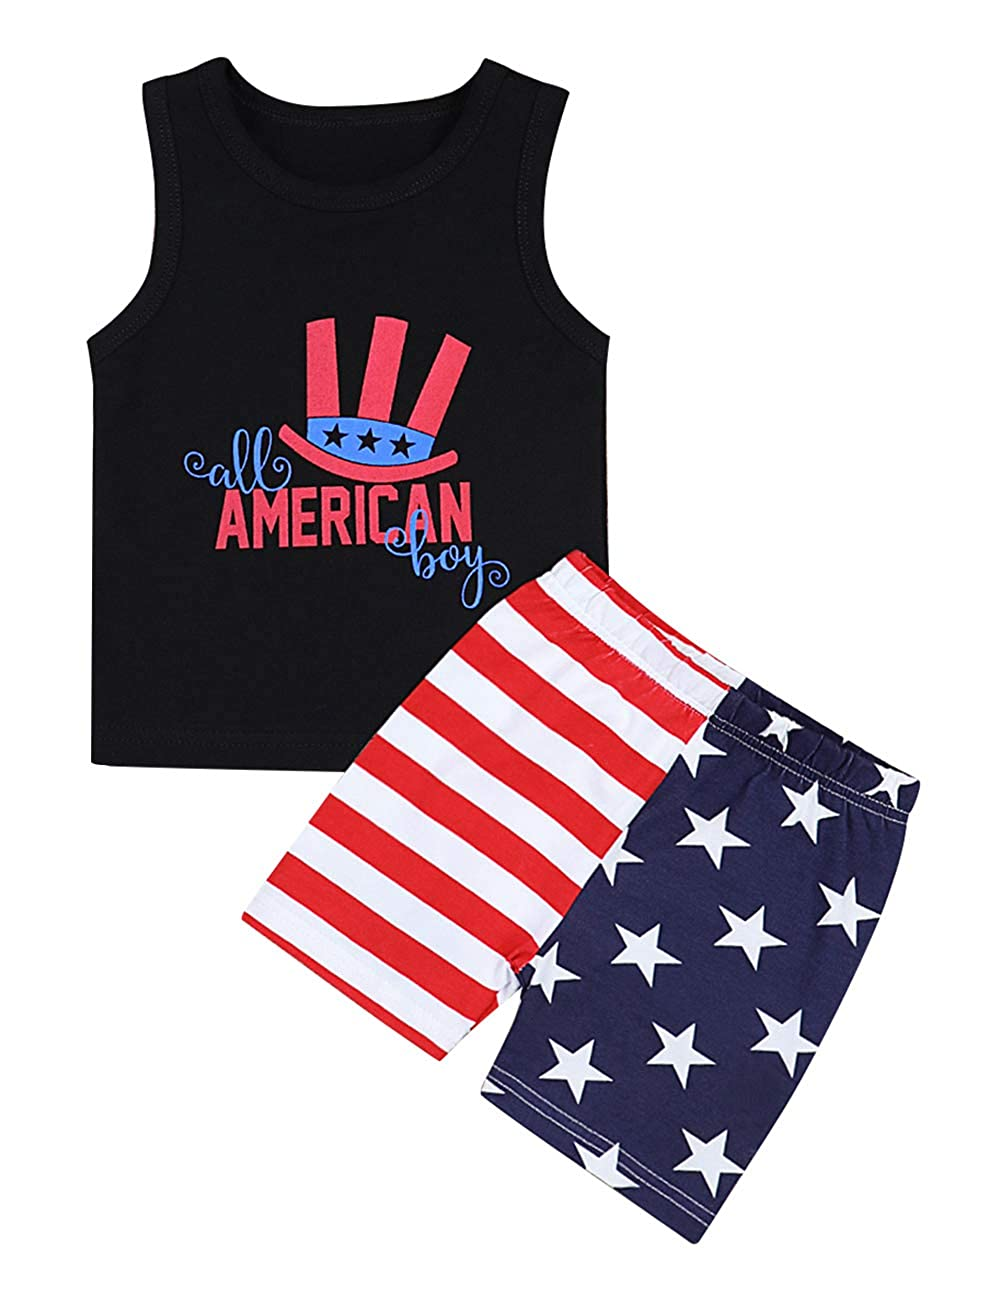 7cc2ff99b Amazon.com: 4th of July Toddler Baby Boy Clothes Patriotic Outfits  Sleeveless T-Shirt Top USA Flag The Stars and Stripes Pants for Kids:  Clothing